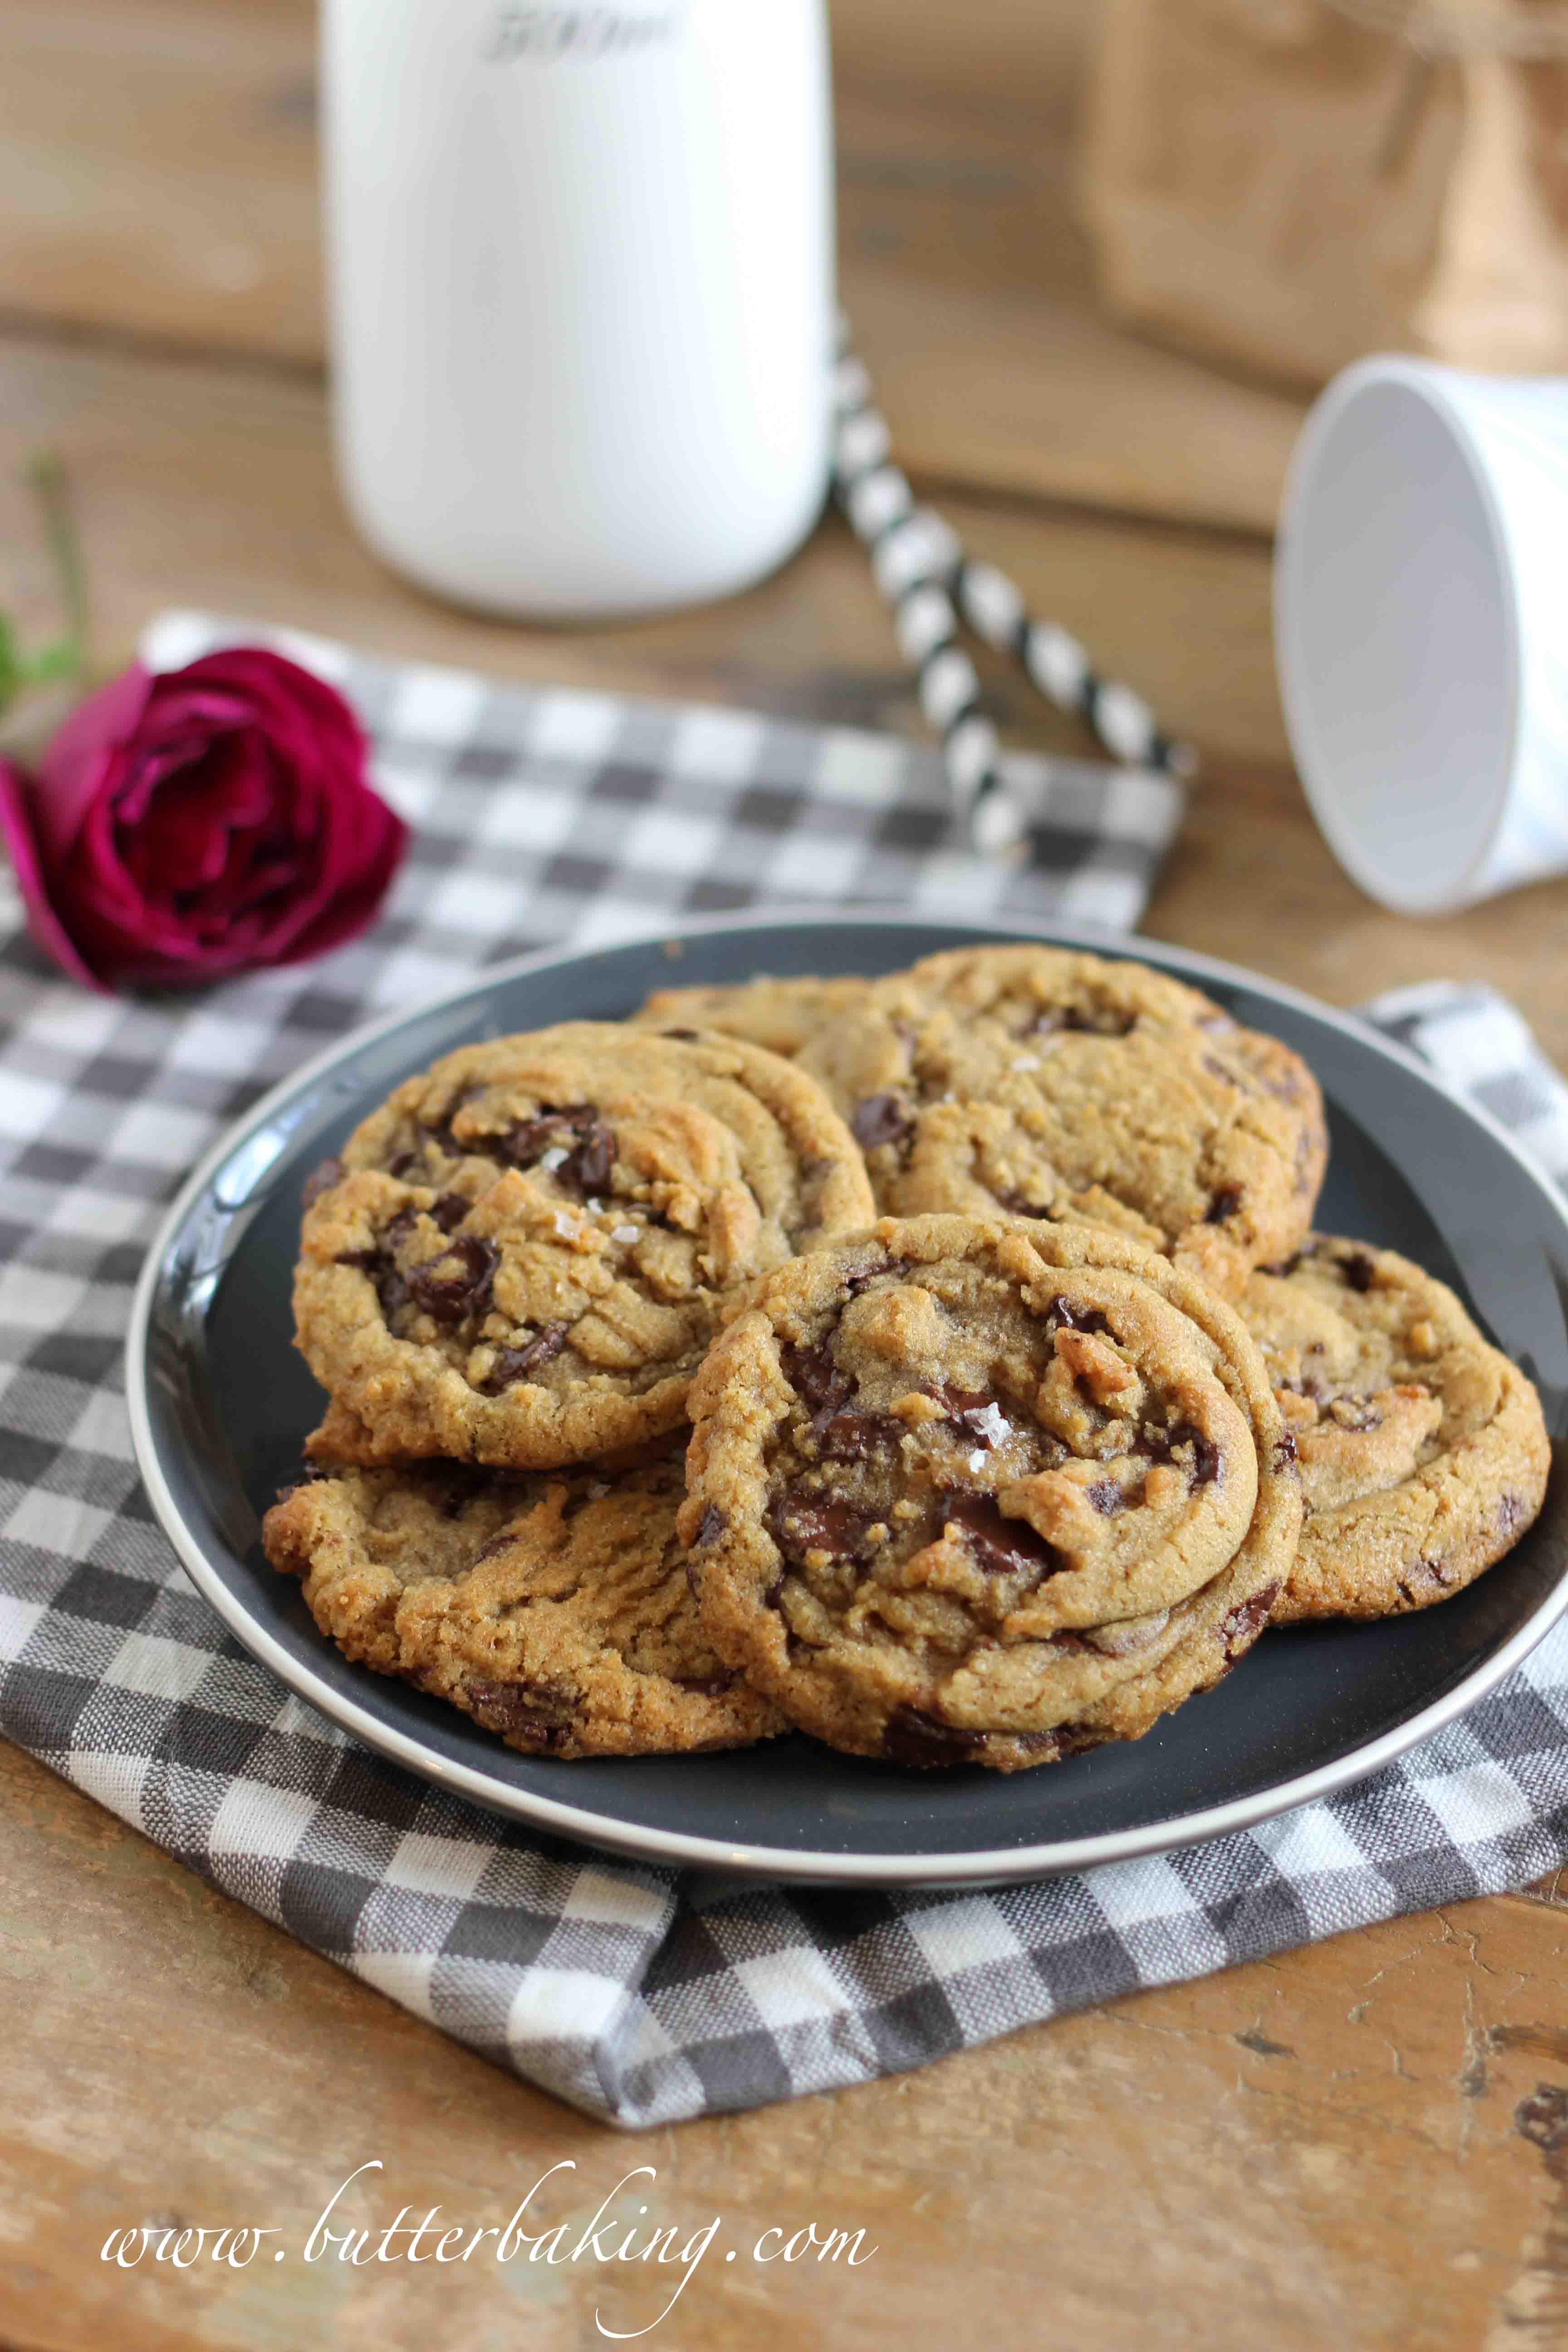 Top With Cinnamon's 'Best' Chocolate Chip Cookies – Butter Baking